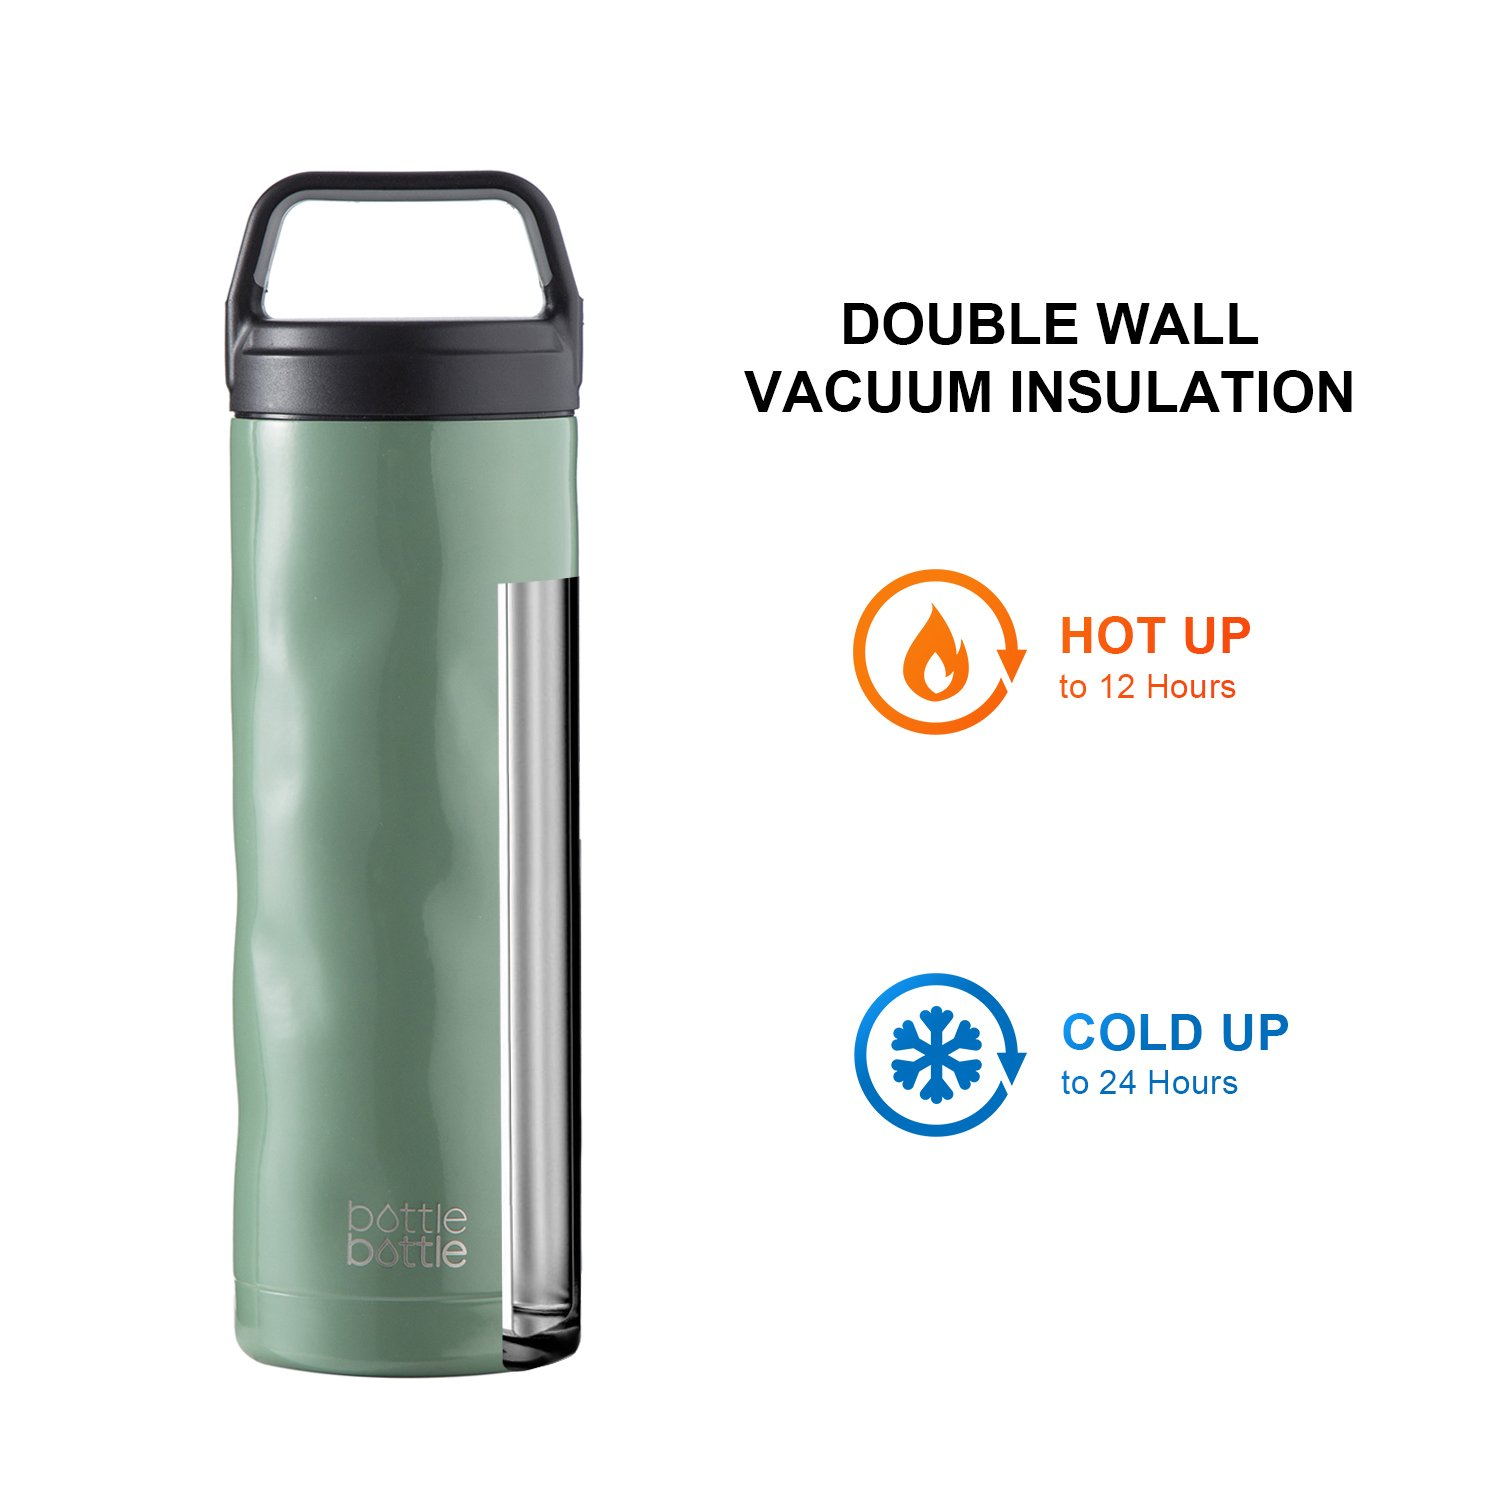 18oz Wide Mouth Double Walled Water Flask for Hot /& Cold Drinks Bottlebottle Crash Bottle Vacuum Insulated Stainless Steel Water Bottle BPA Free with Leak Proof Sports Cap